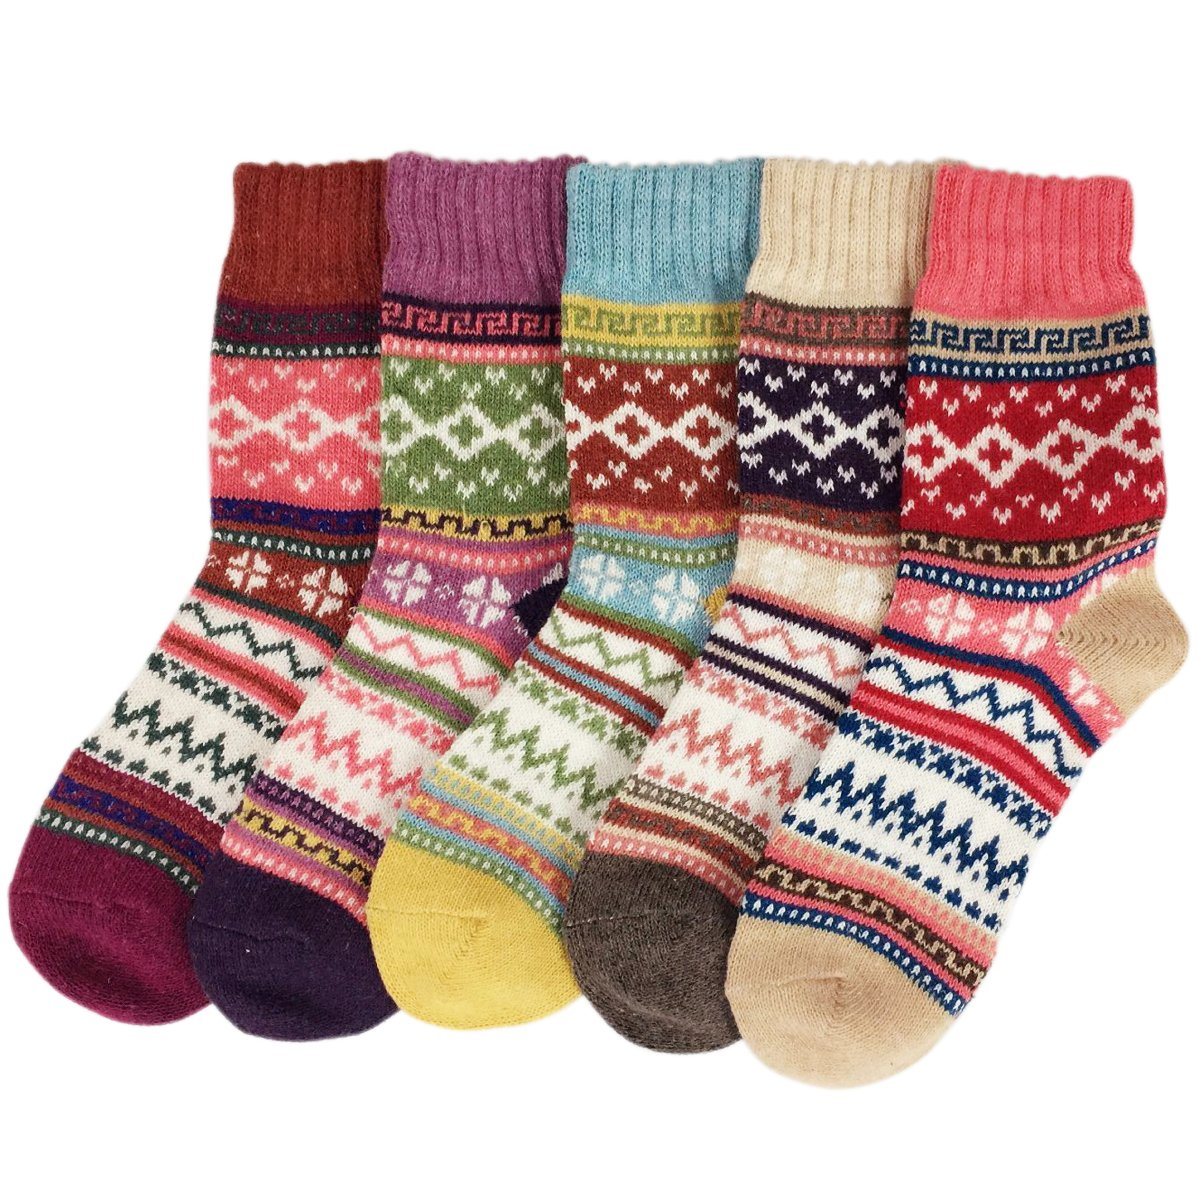 JOYEBUY 5 Pack Winter Fall Women Socks Vintage Style Cotton Knitting Wool Warm Crew Socks (One Size, Style 5) by JOYEBUY (Image #3)